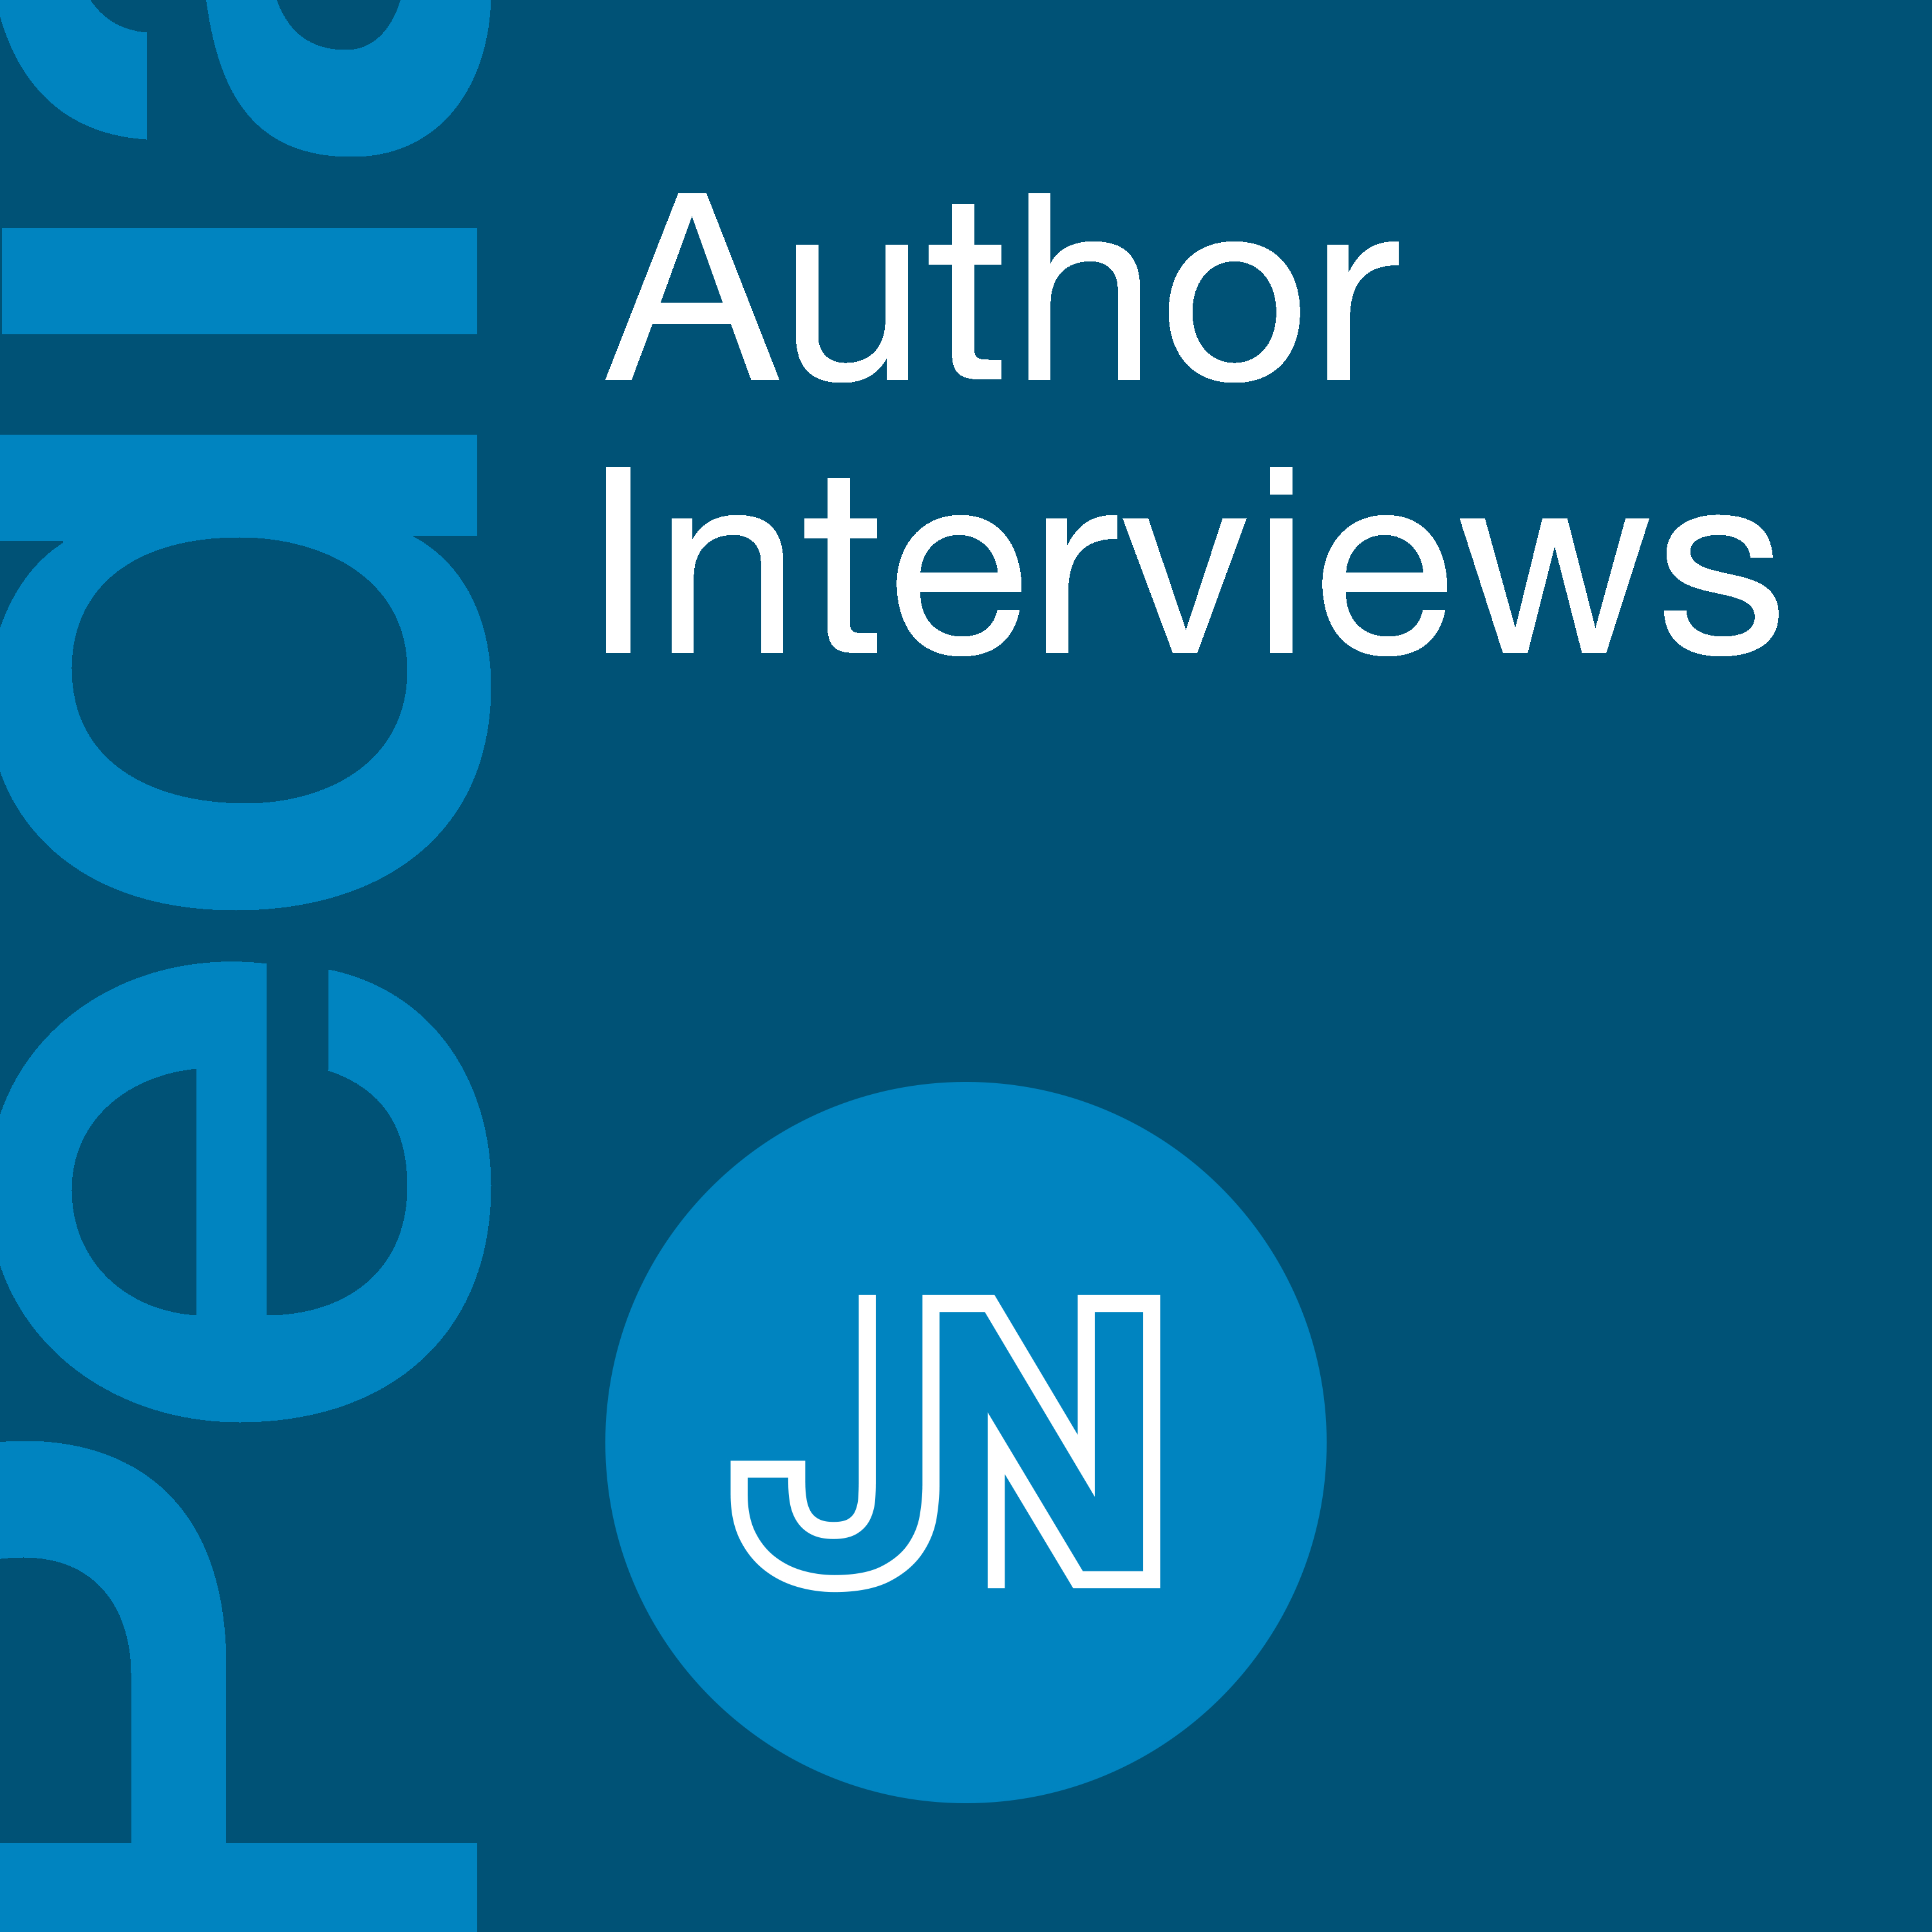 JAMA Pediatrics Author Interviews: Research in medicine, science & clinical practice for physicians, researchers, clinicians